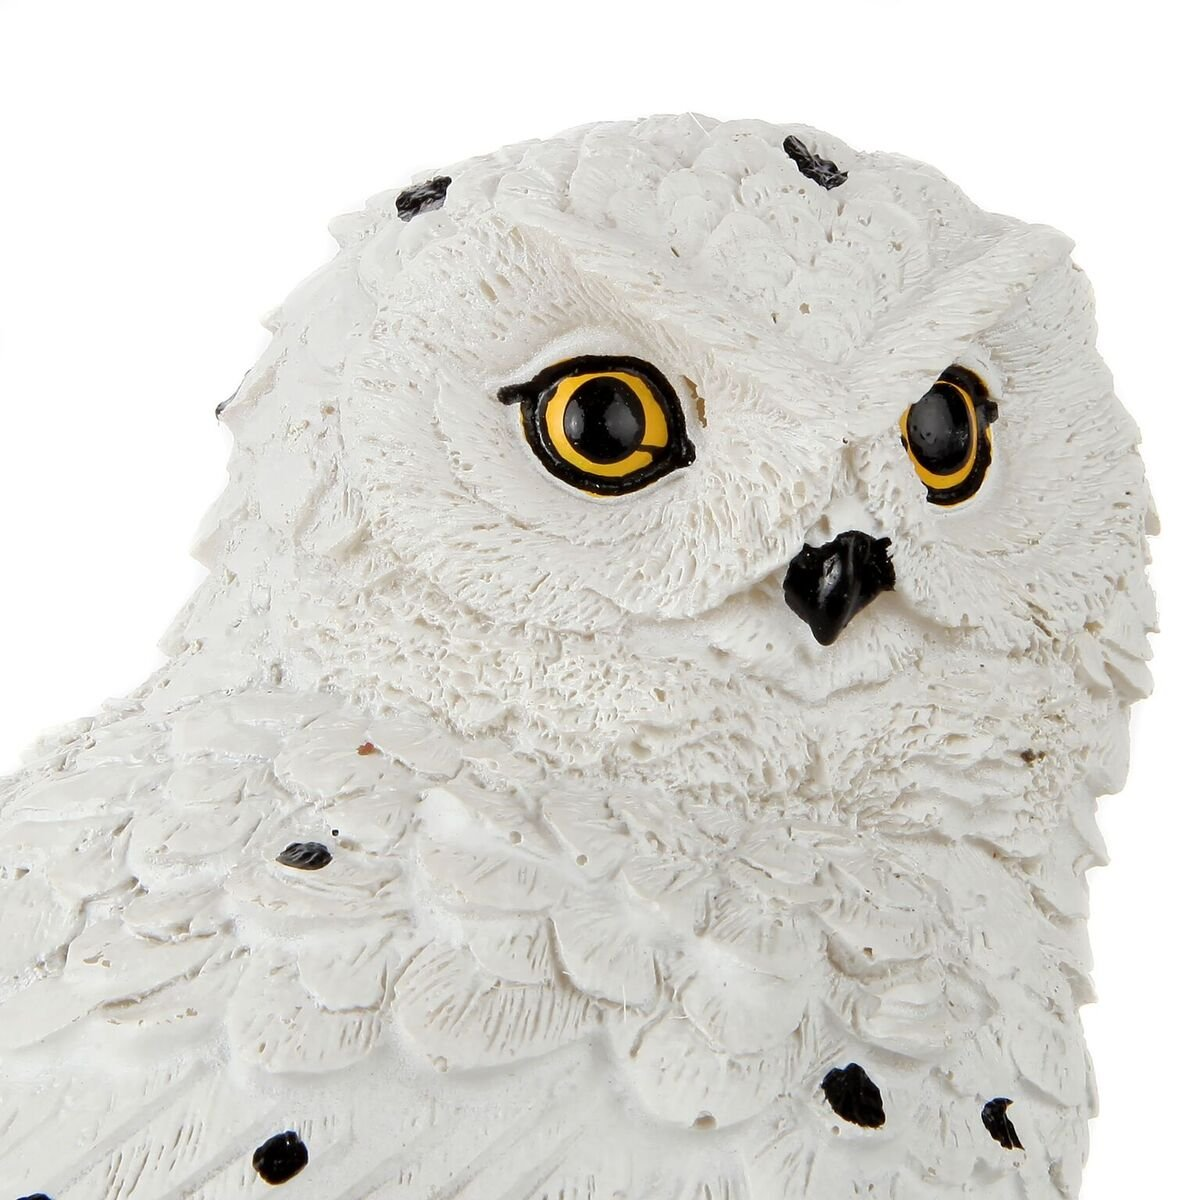 Trenton Gifts Weather Resistant Outdoor LED Solar Owl Light, Garden Stake | White by Trenton Gifts (Image #6)